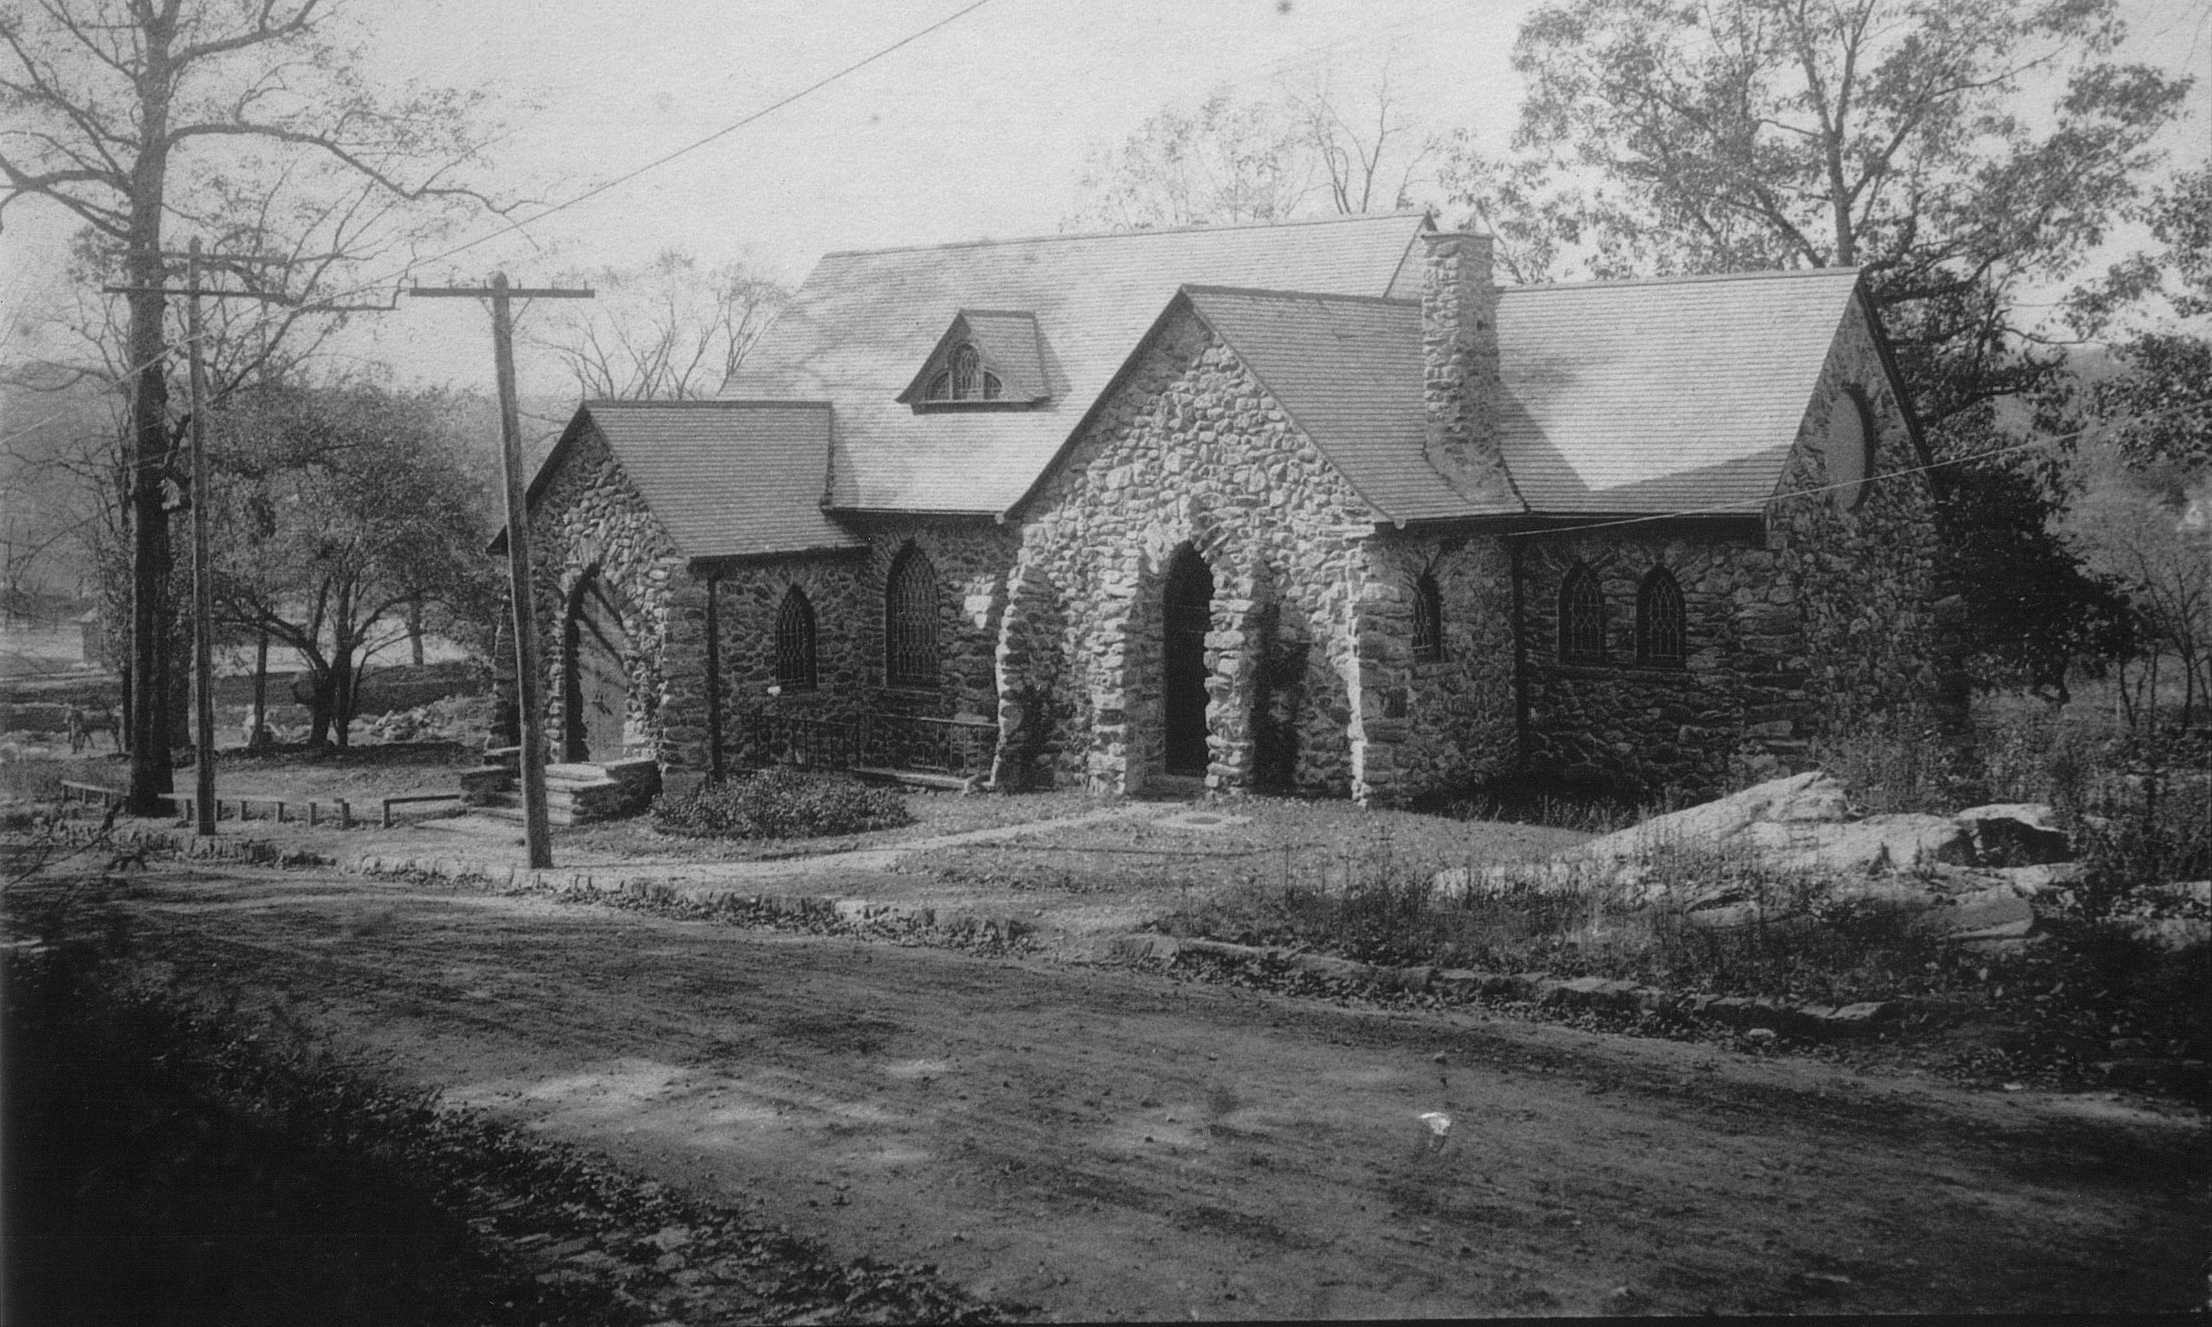 1901 - The original Christ Church sanctuary - at the intersection of the present-day Kensington and Sagamore Roads. The congregation almost immediately outgrew this space, and it had to be expanded just 6 years later in 1907.